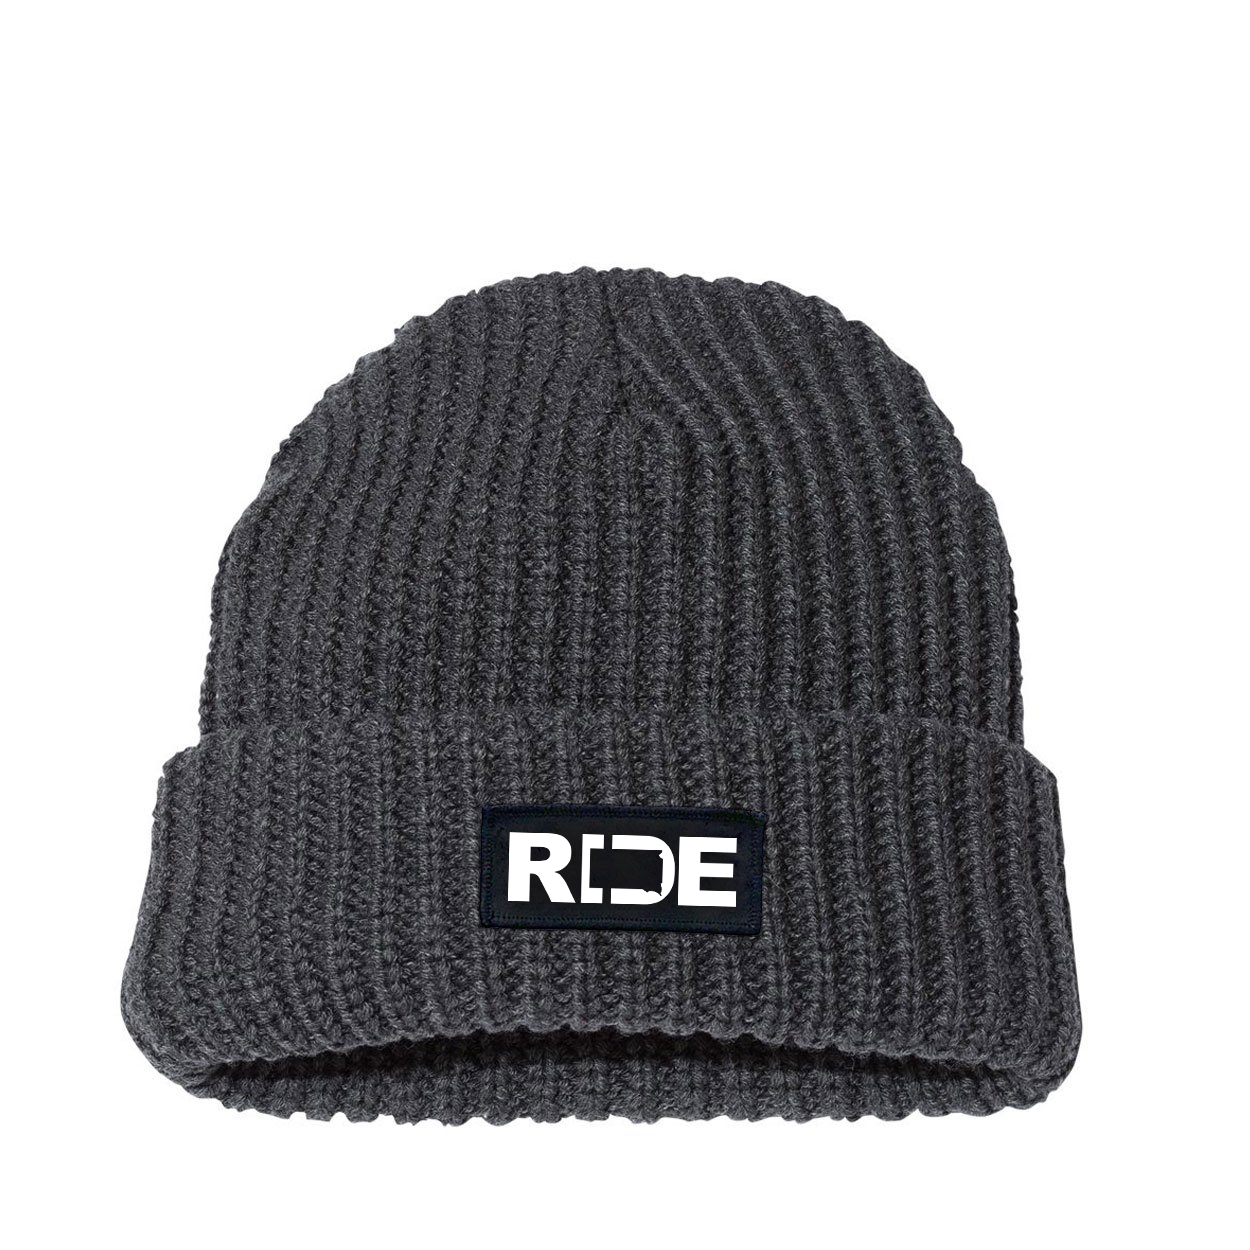 Ride South Dakota Night Out Woven Patch Roll Up Jumbo Chunky Knit Beanie Charcoal (White Logo)